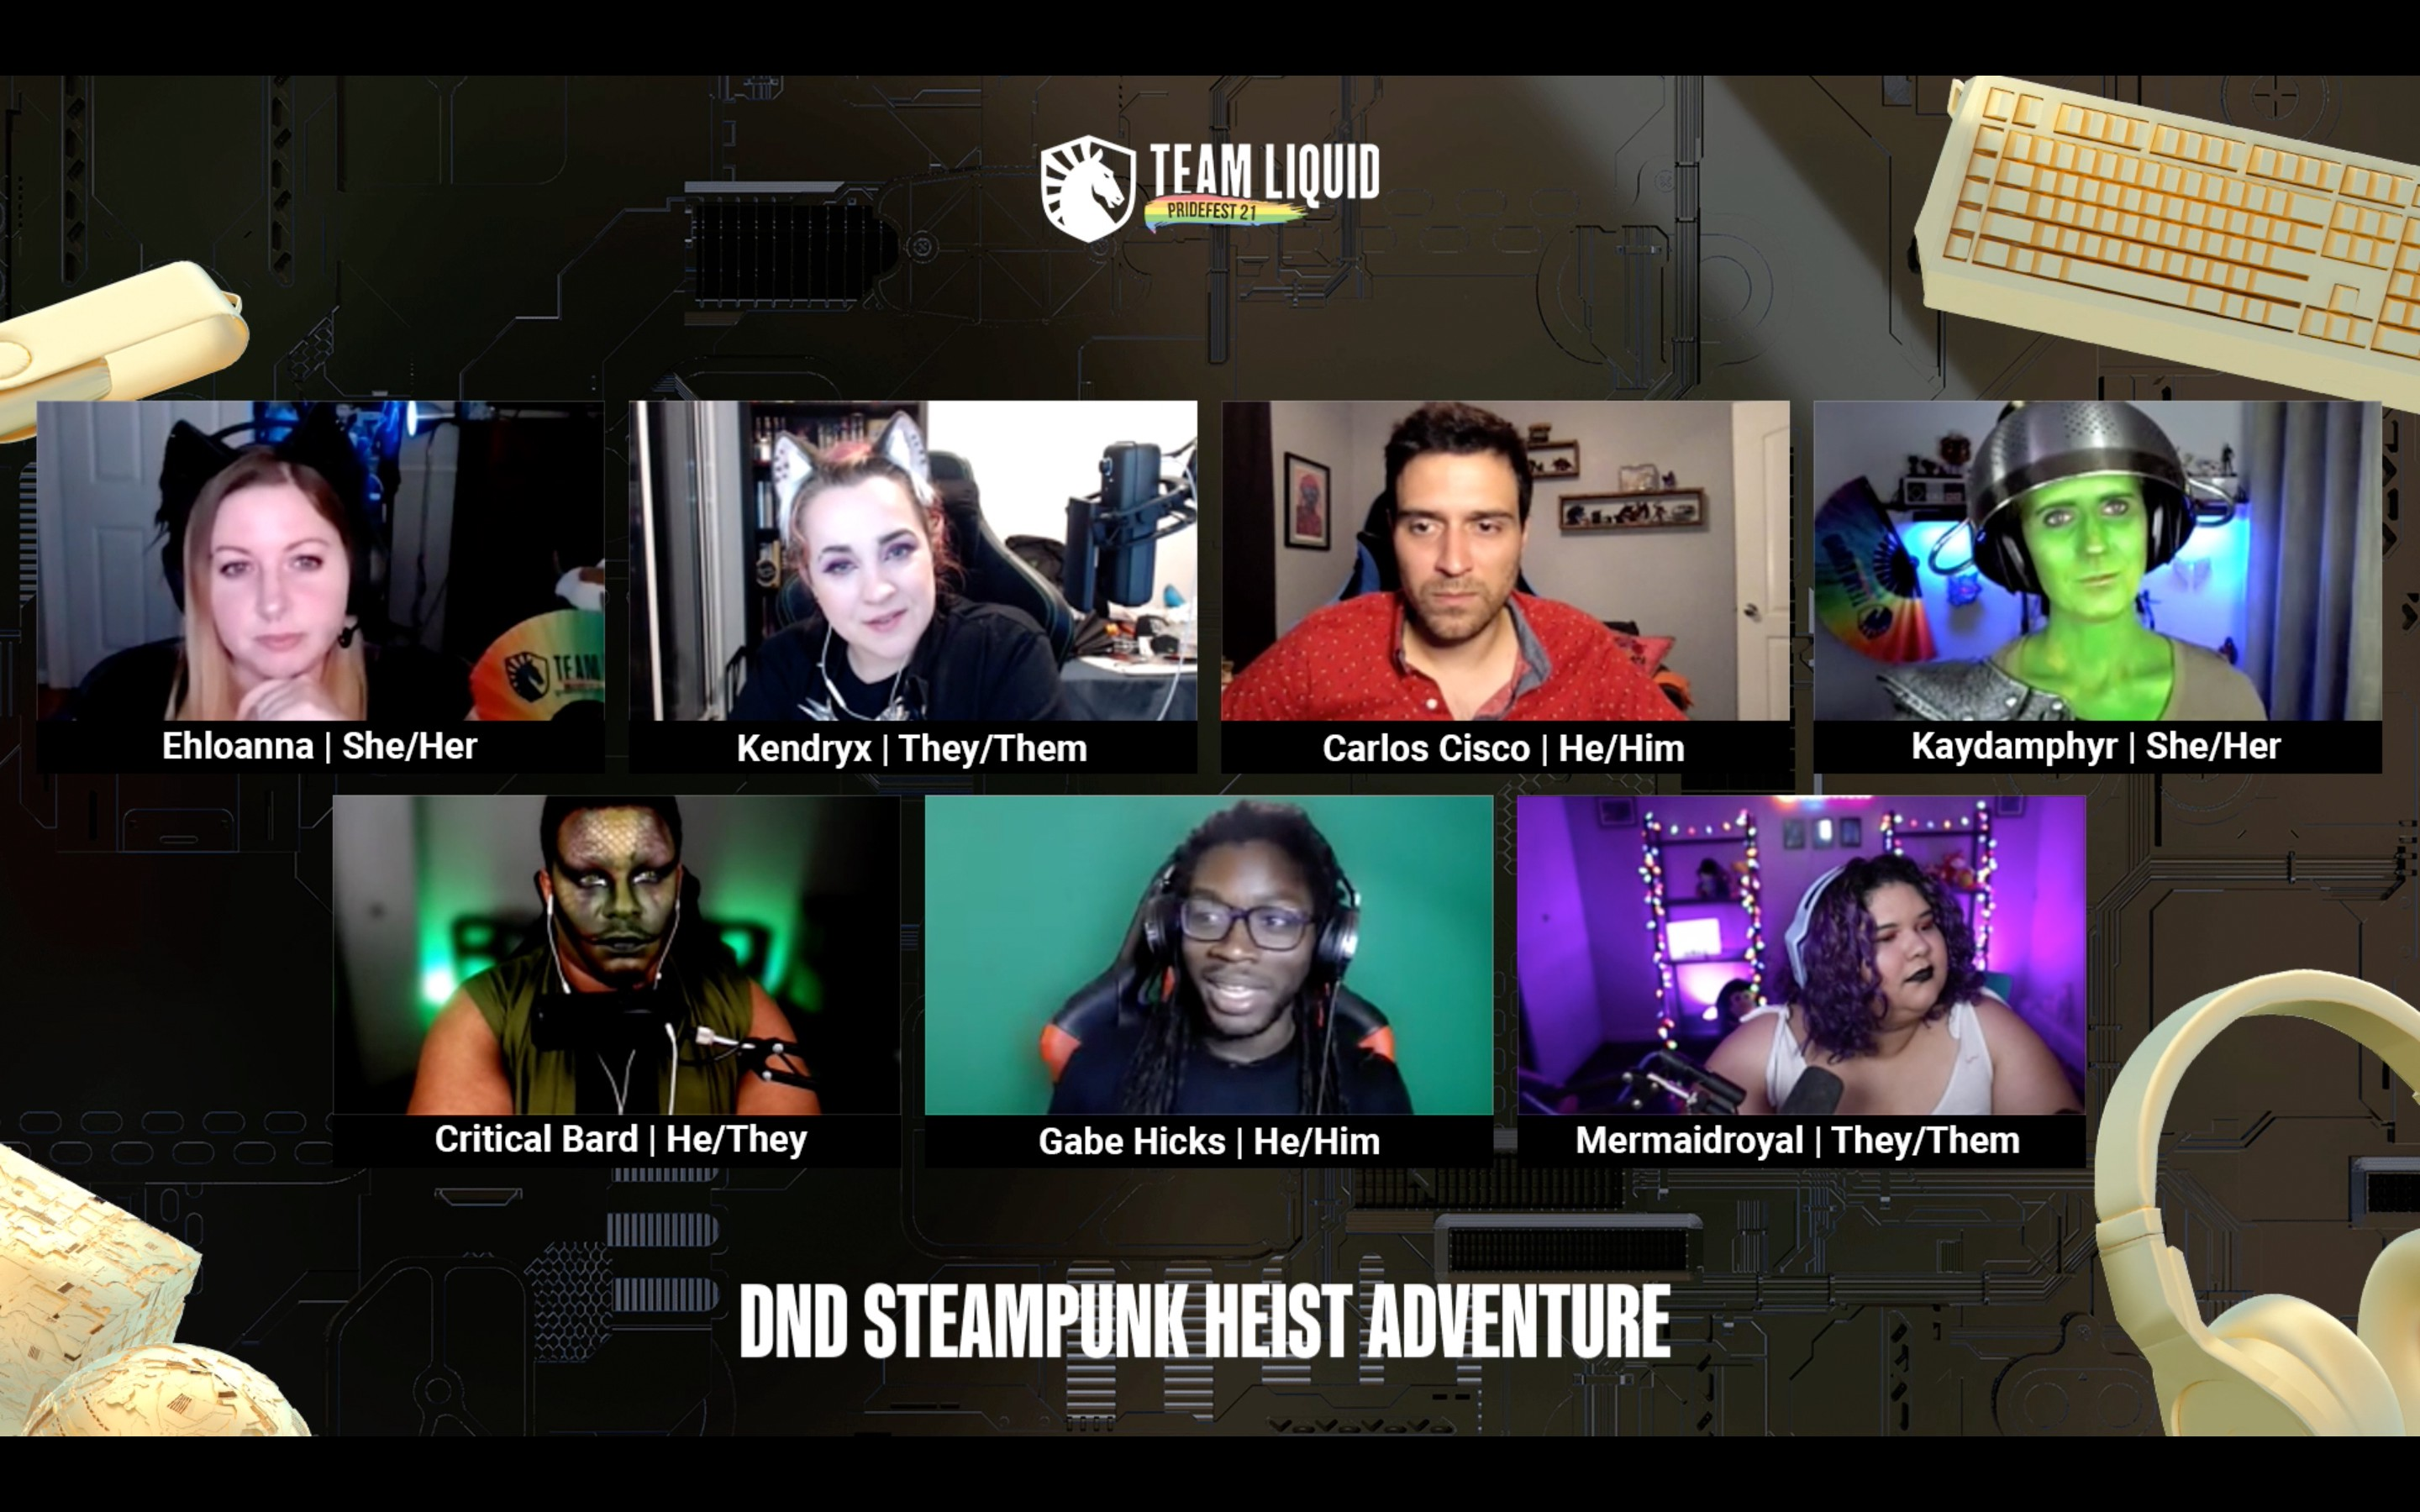 Cast of DND Steampunk Height Adventure on Twitch